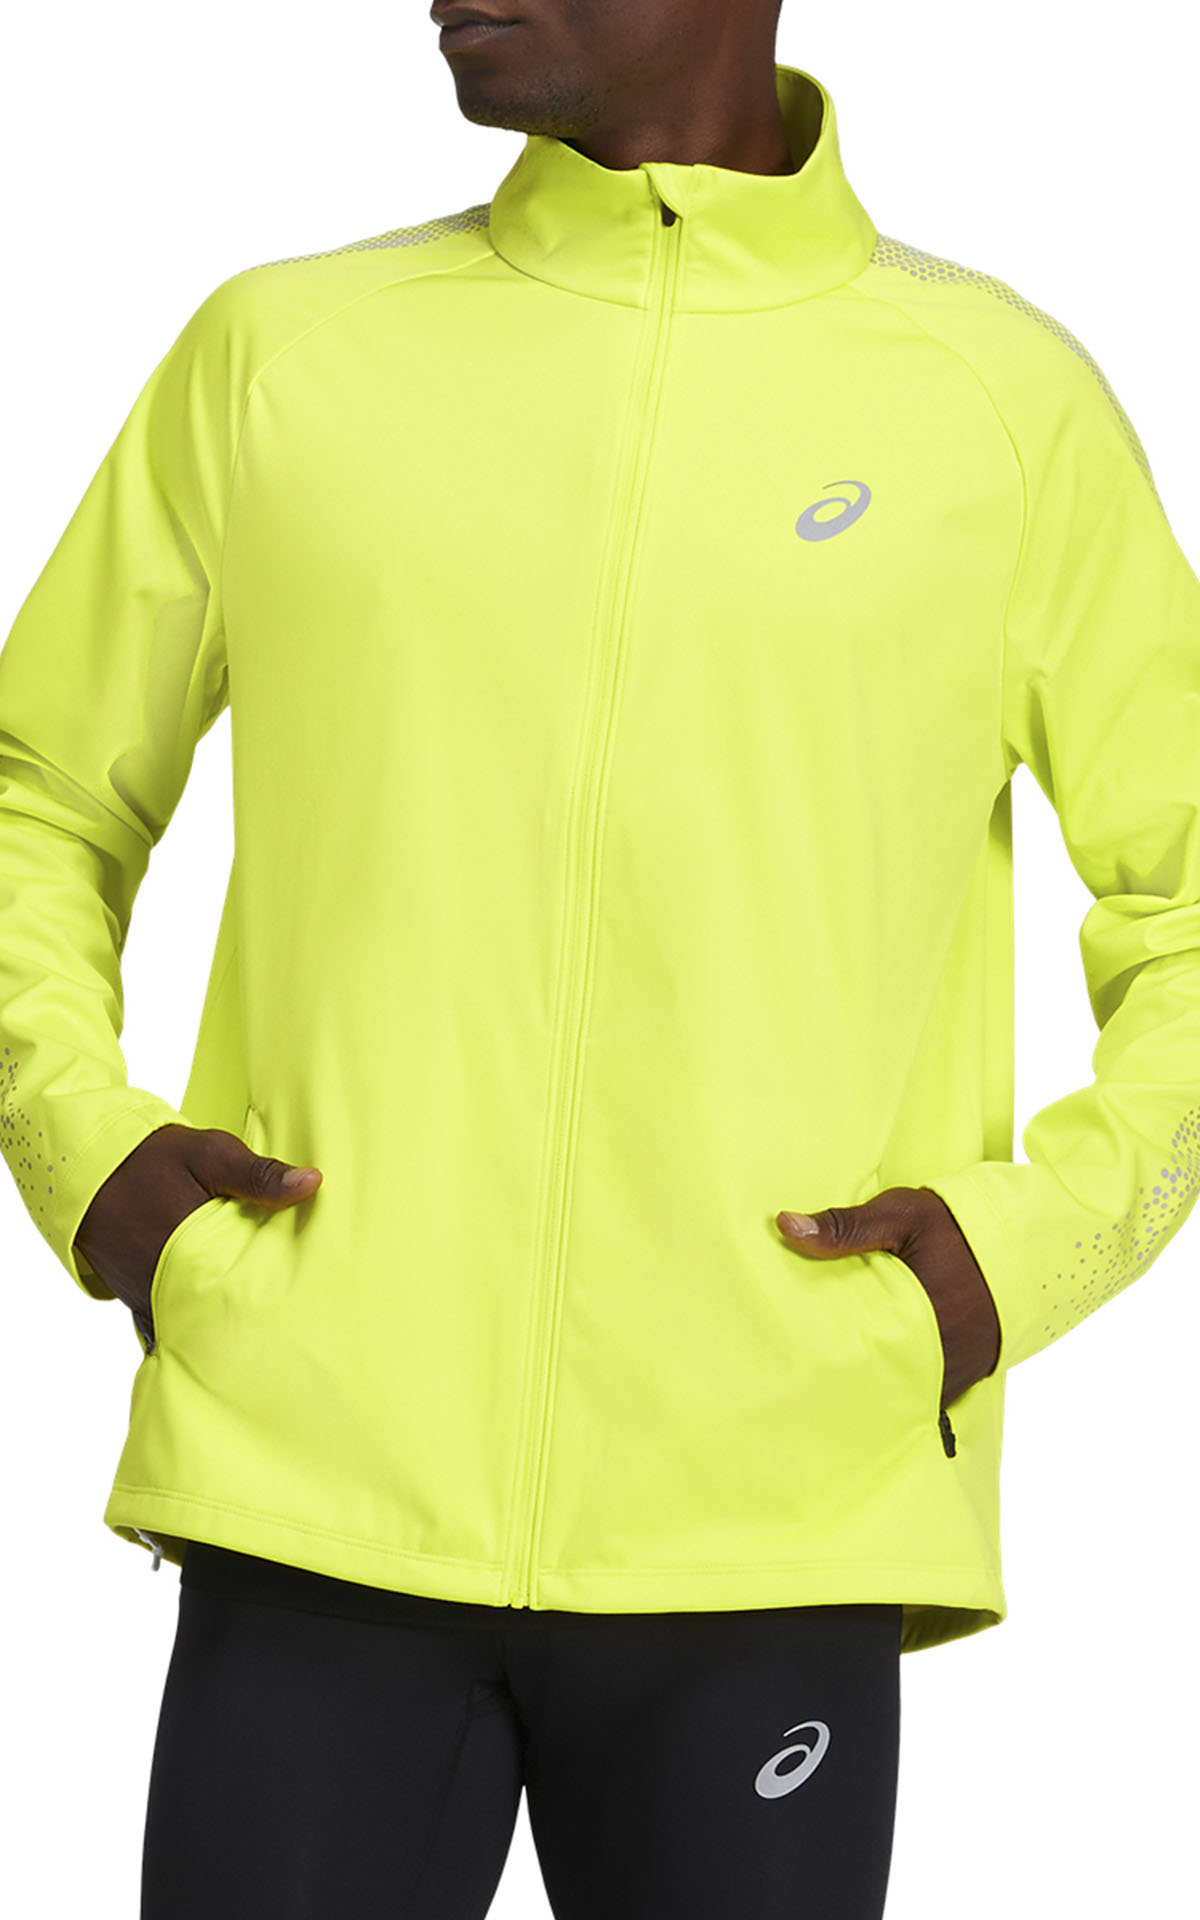 ASICS yellow running jacket